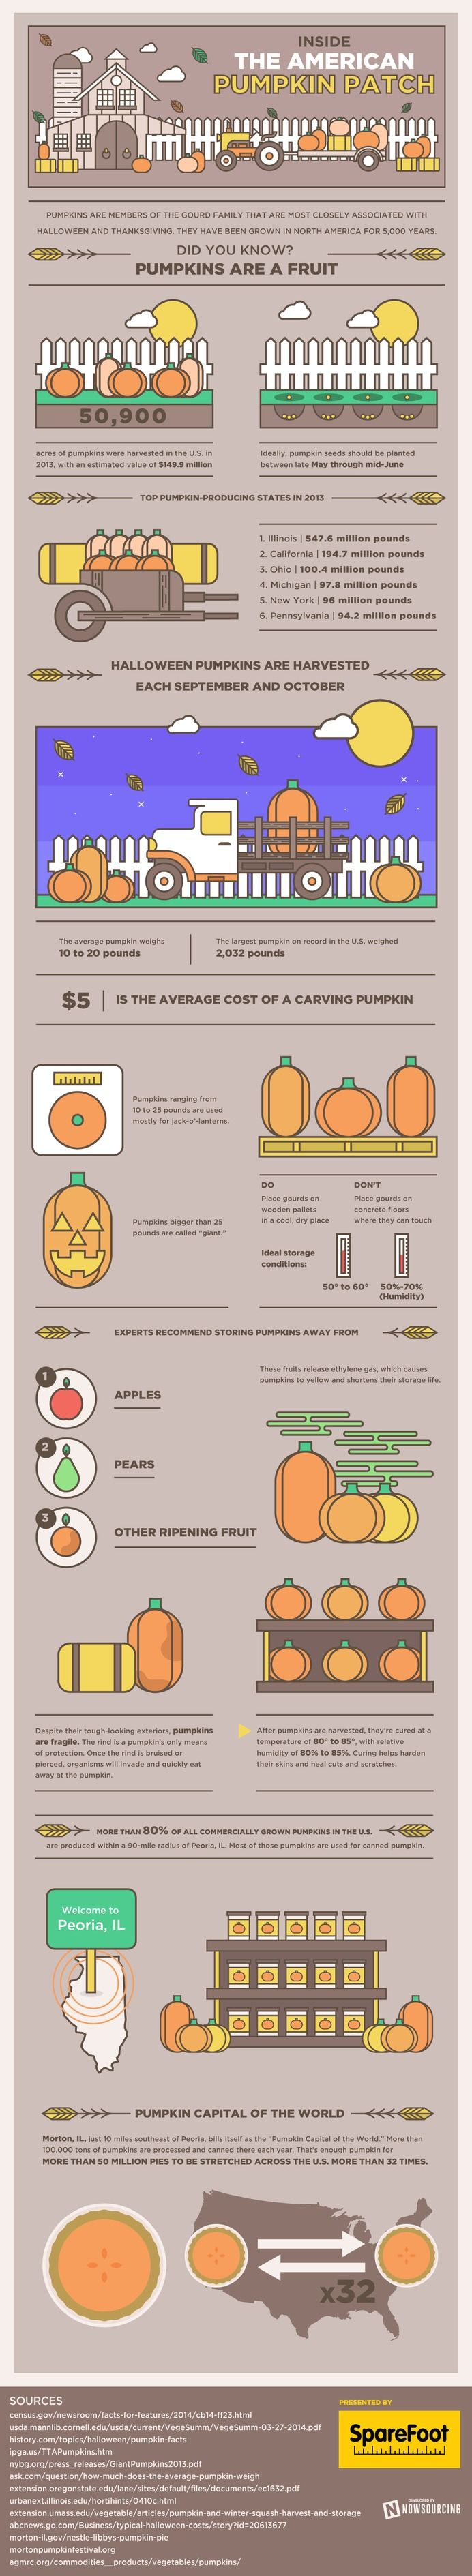 Learn all about pumpkins from this infographic. You might be surprised what a big business they are! — Designspiration